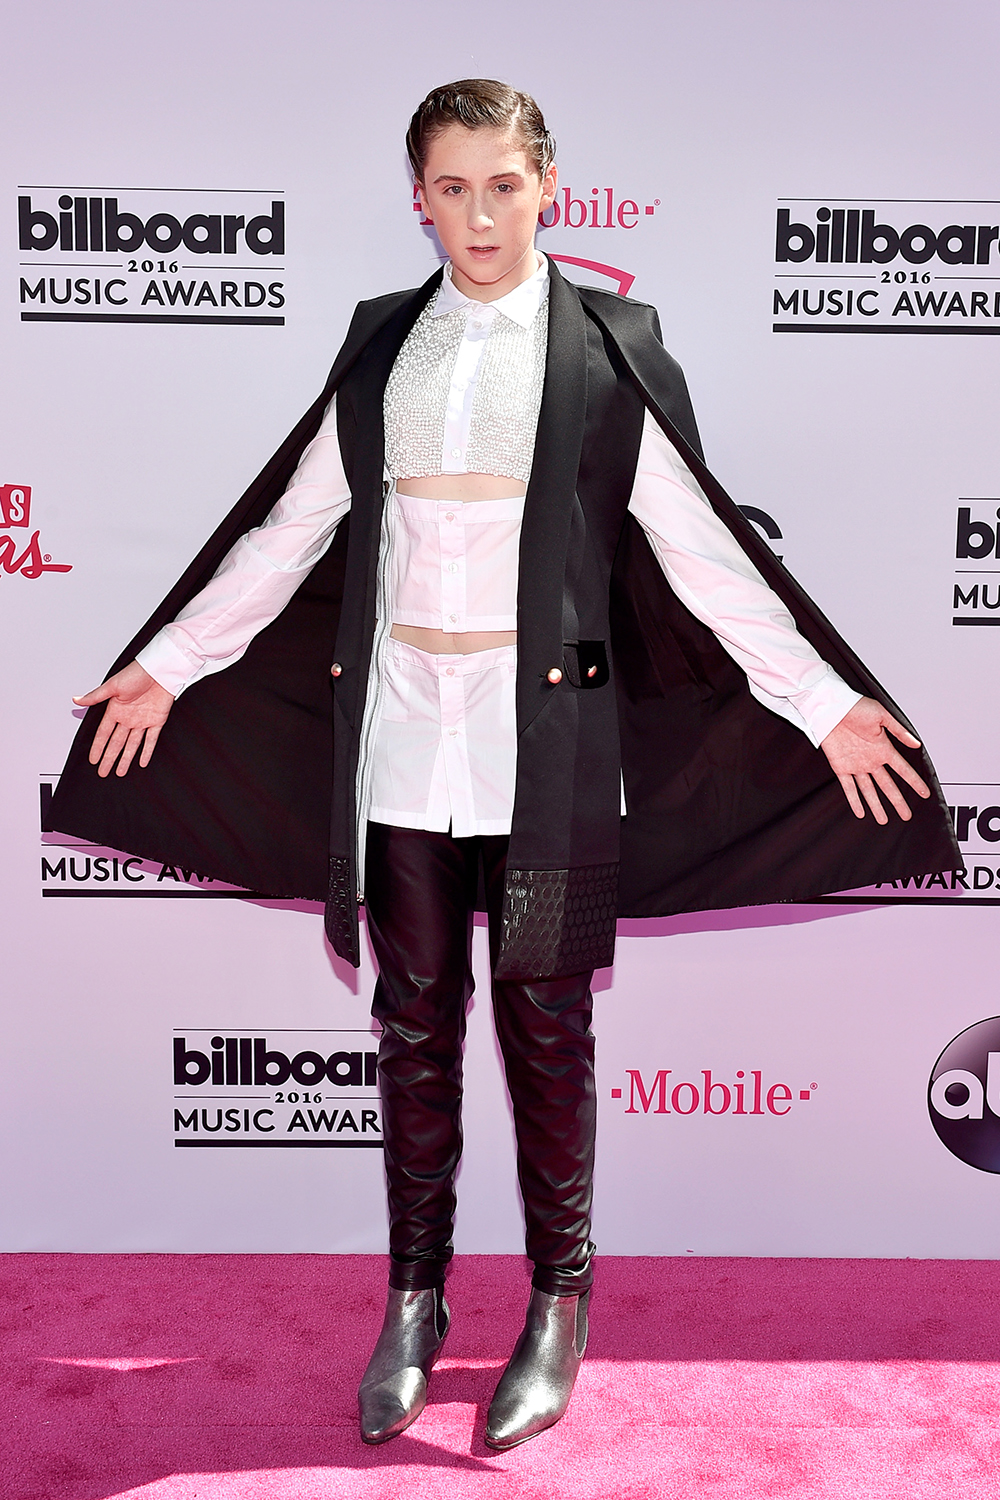 trevor-moran-BBMA-red-carpet-2016-billboard-1000.jpg